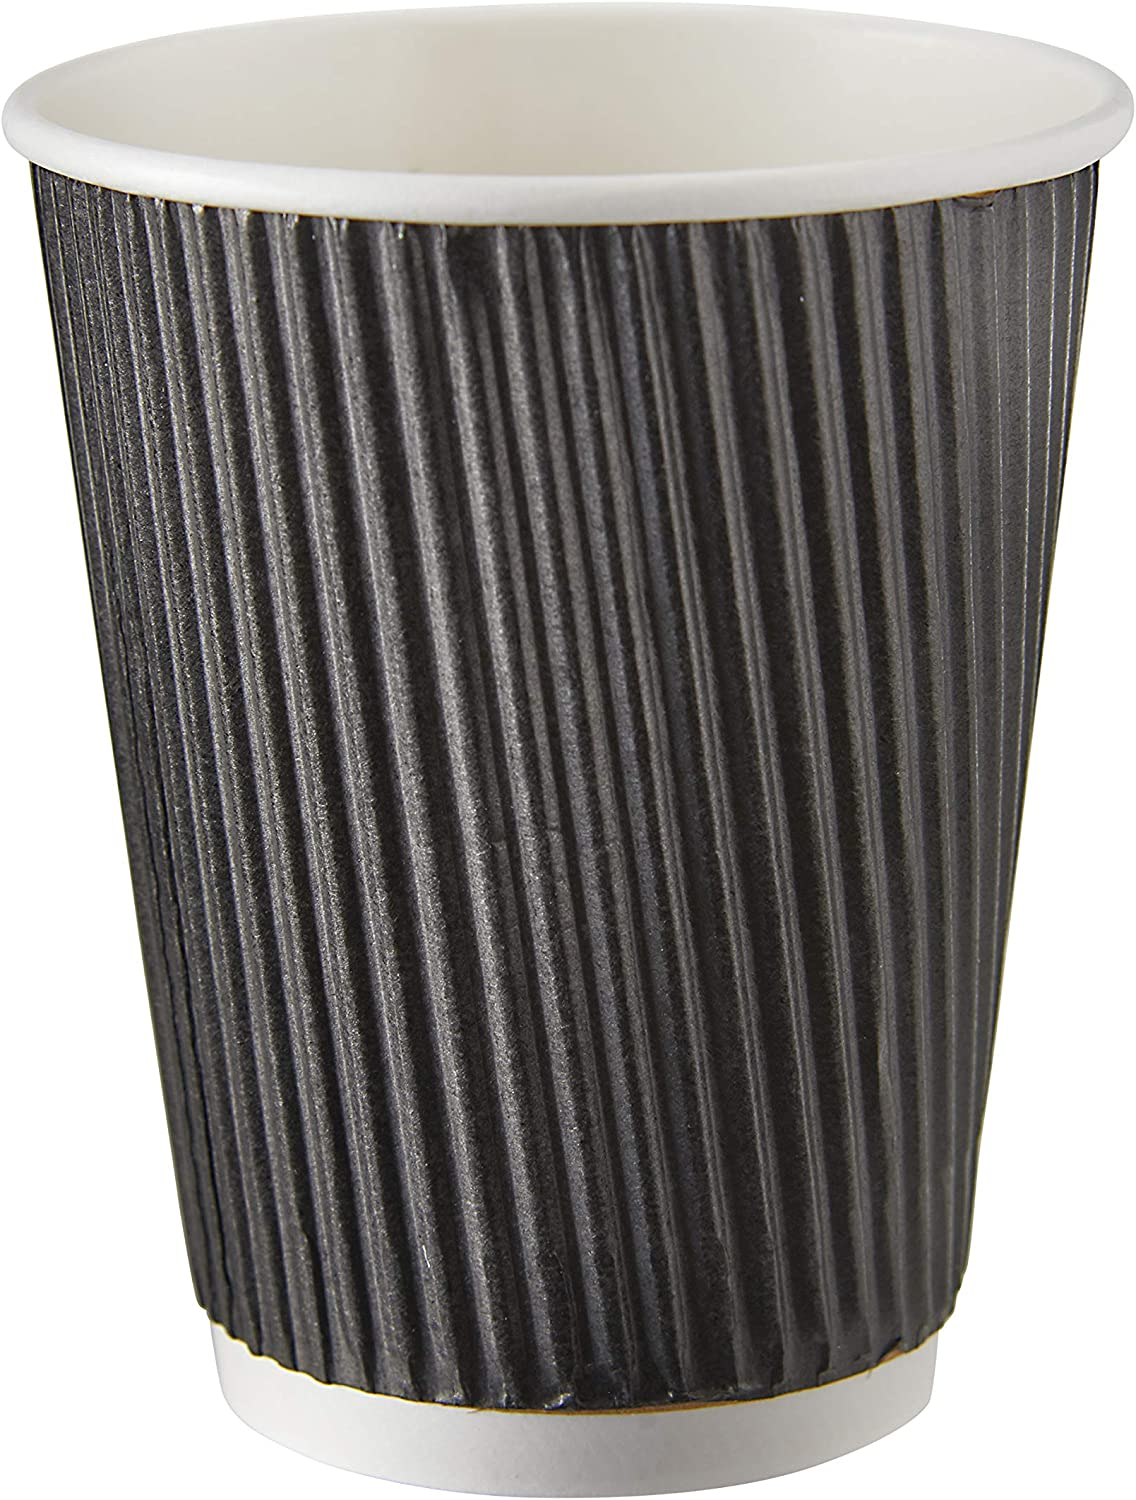 Biodegradable Ripple Paper Cups 12oz Insulated Paper